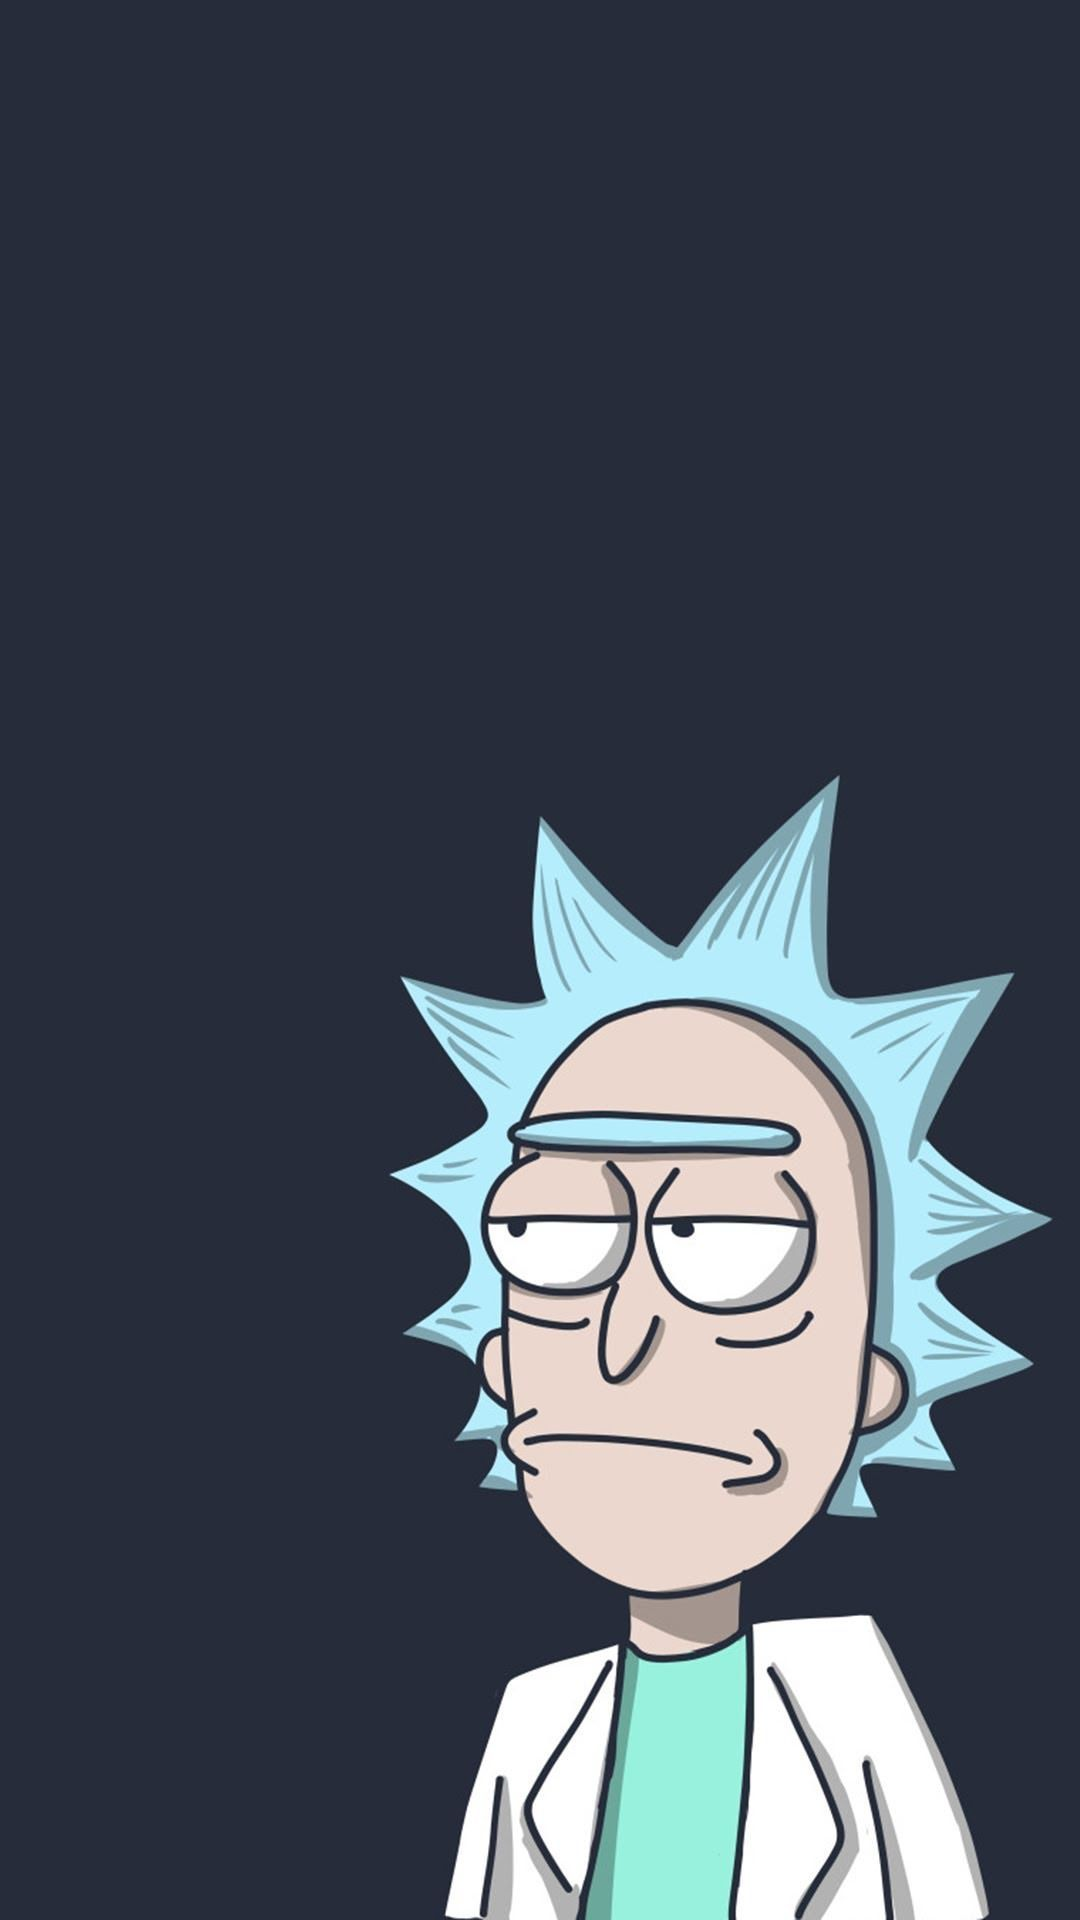 Rick And Morty Iphone Wallpapers Top Free Rick And Morty Intended For Rick E Morty W In 2020 Iphone Wallpaper Rick And Morty Rick And Morty Image Rick And Morty Poster